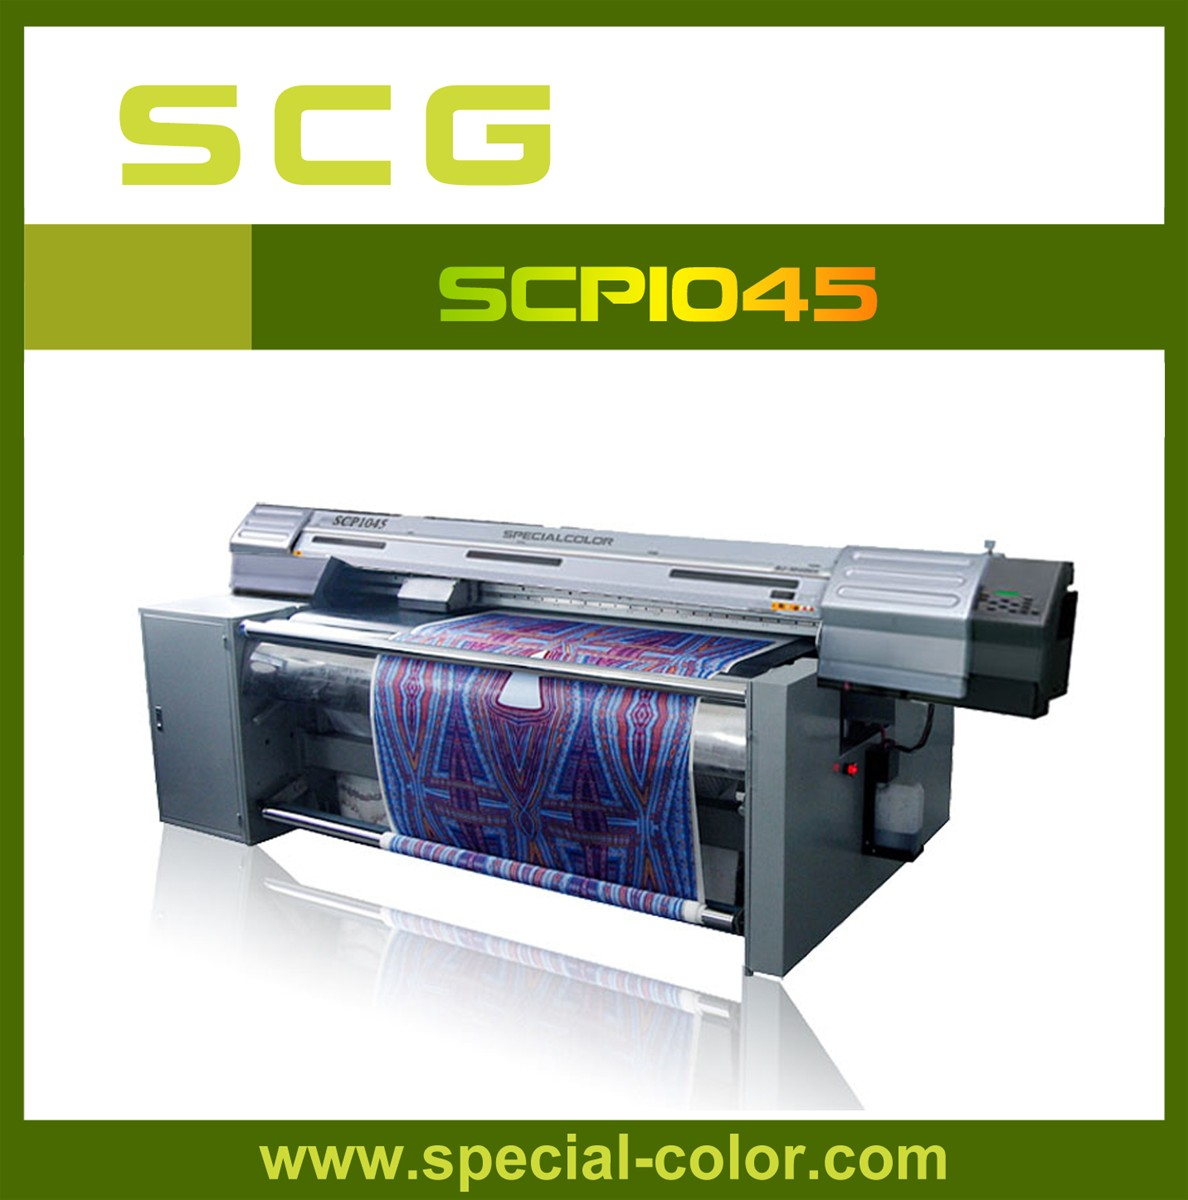 Flatbed Textile Printing Machine Scp1045 Purchasing